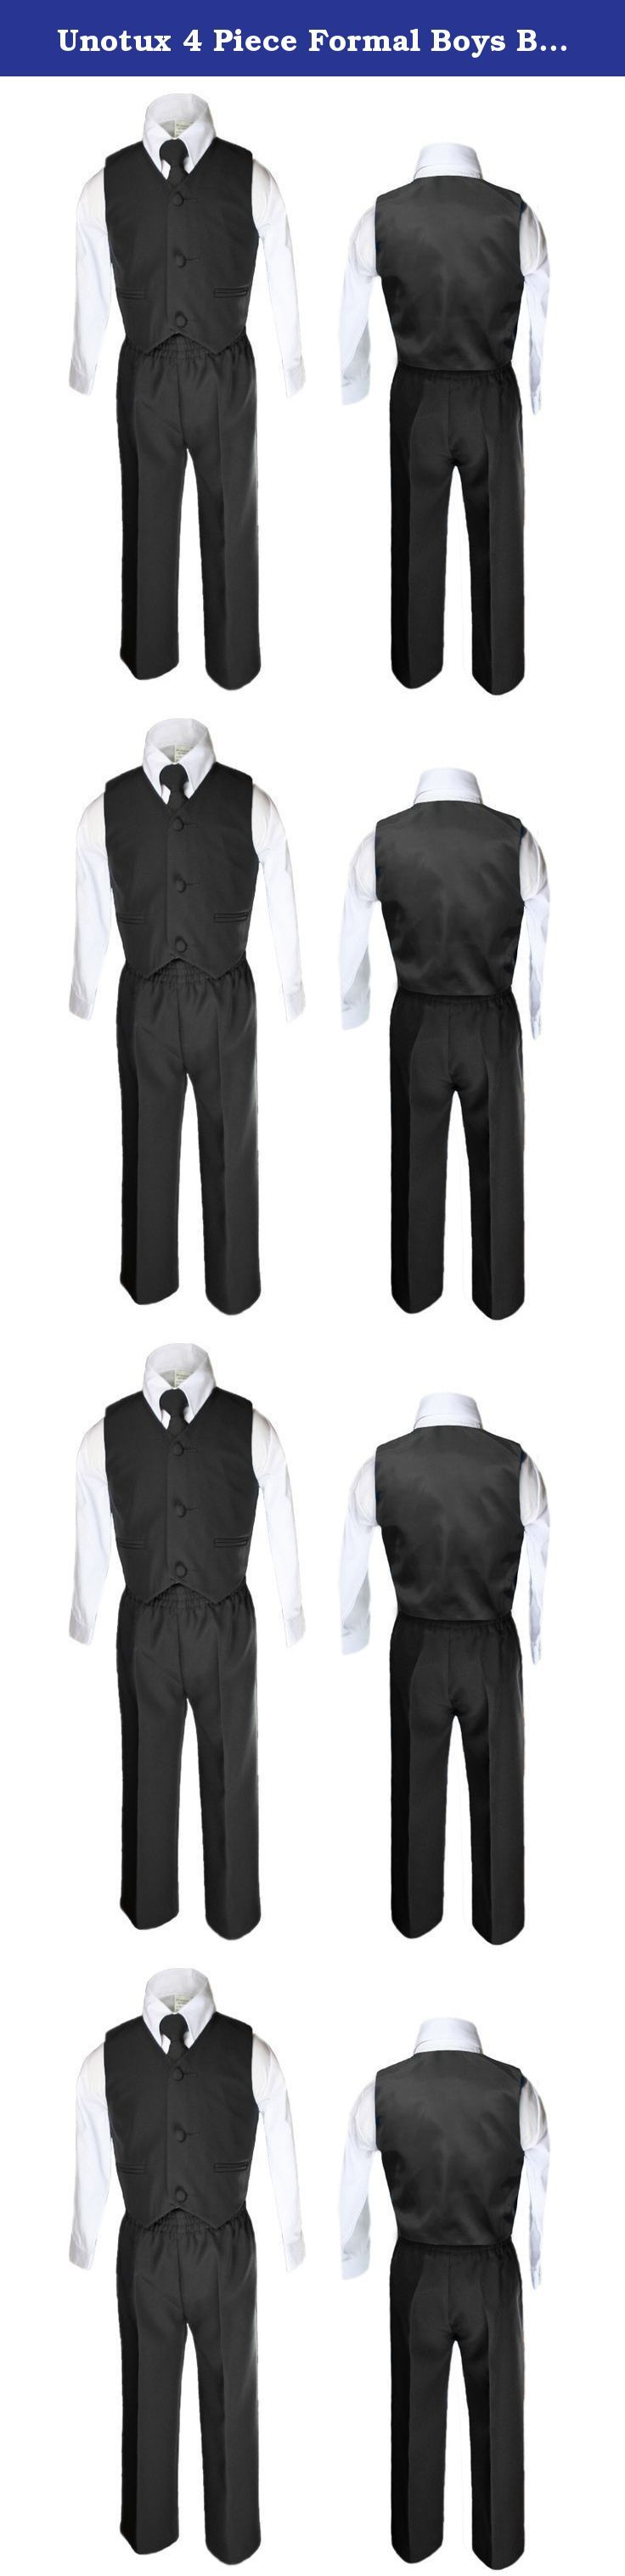 Unotux 4 Piece Formal Boys Black Vest Necktie Sets Suits From 0 Month to 7 Years (4T). 1.The long white shirt is made out 35% cotton, 65% polyester fabric. 2. Matching solid color vest with cover buttons. 3. Matching pants, a hidden fly zipper in the front, belt loops and an adjustable elastic waistband. There are angled pockets on each side of the pants and two buttoned welt pockets on the back. Note: baby and toddler sized (S M L XL 2T 3T 4T) pants do not have a fly zipper and belt…